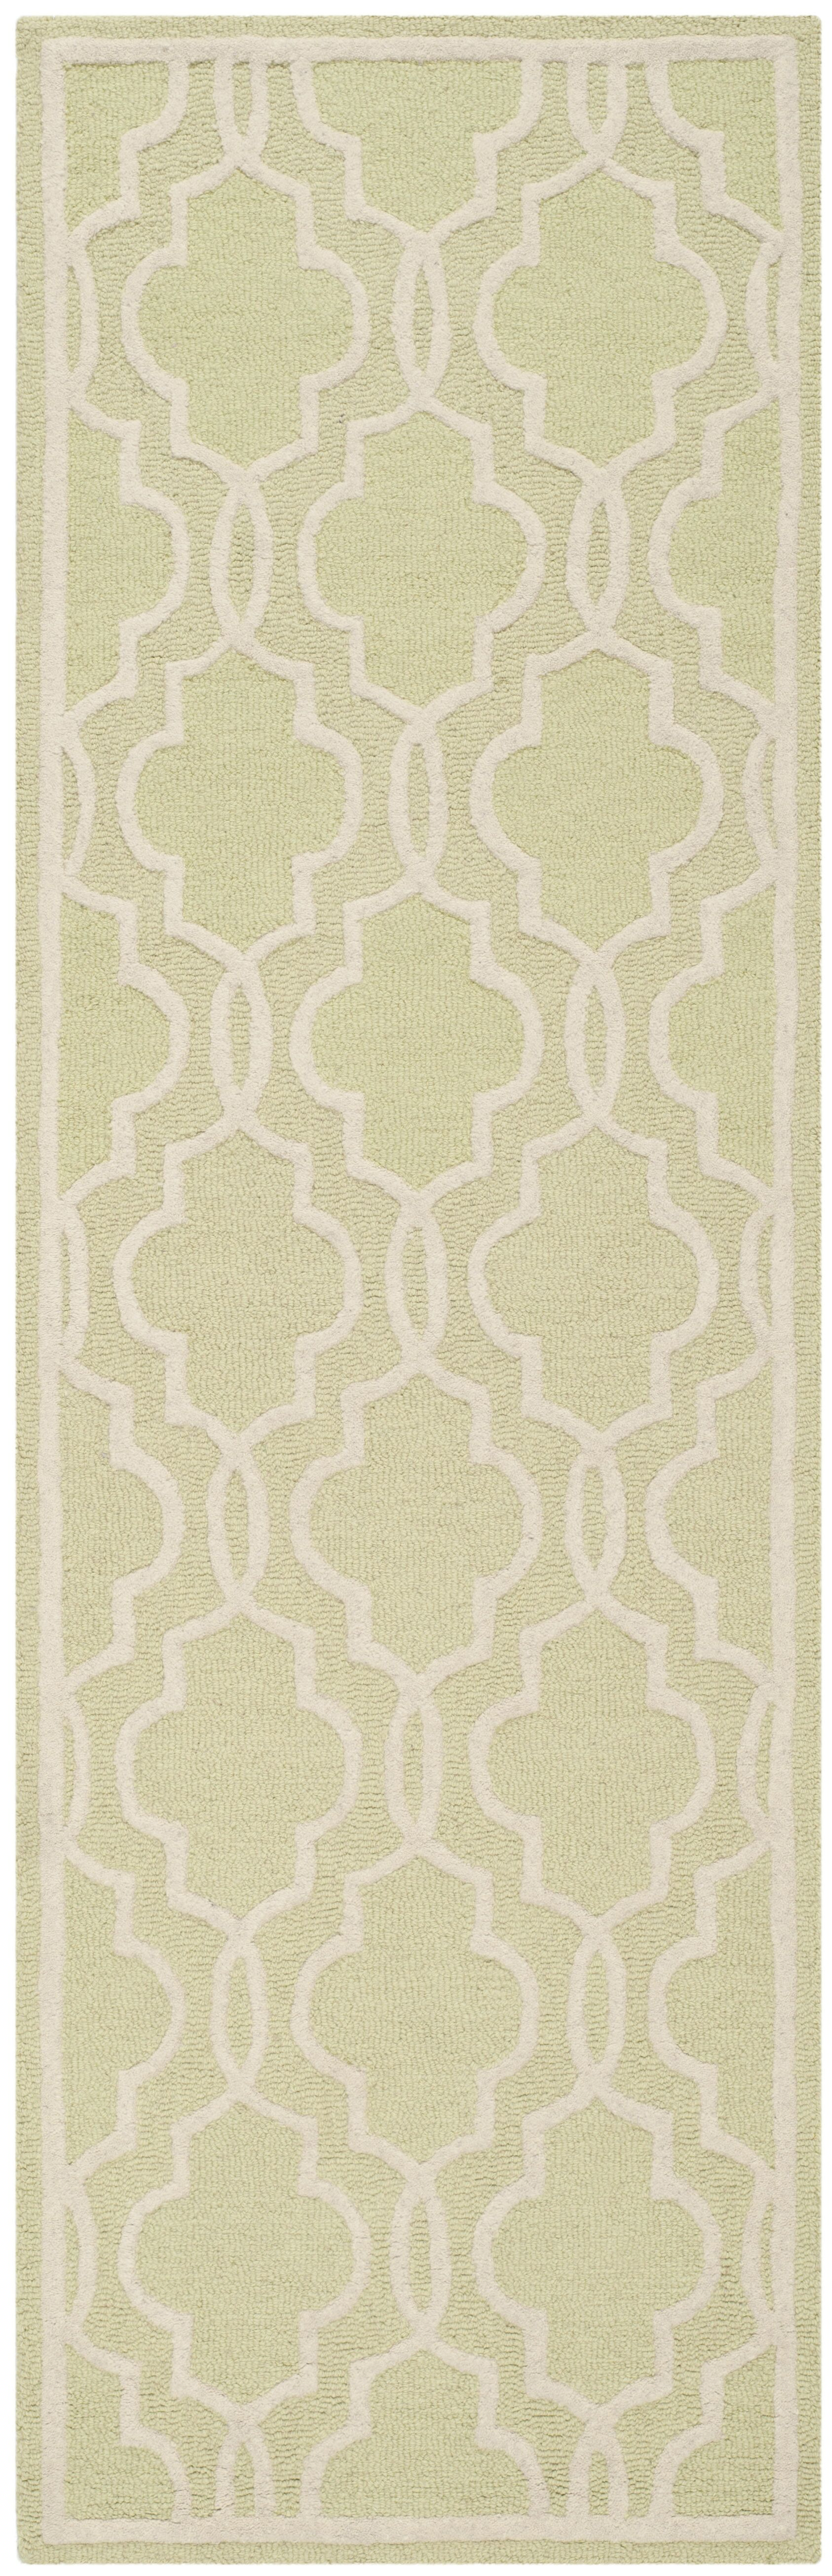 Martins Hand-Tufted Wool Light Green/Ivory Area Rug Rug Size: Runner 2'6